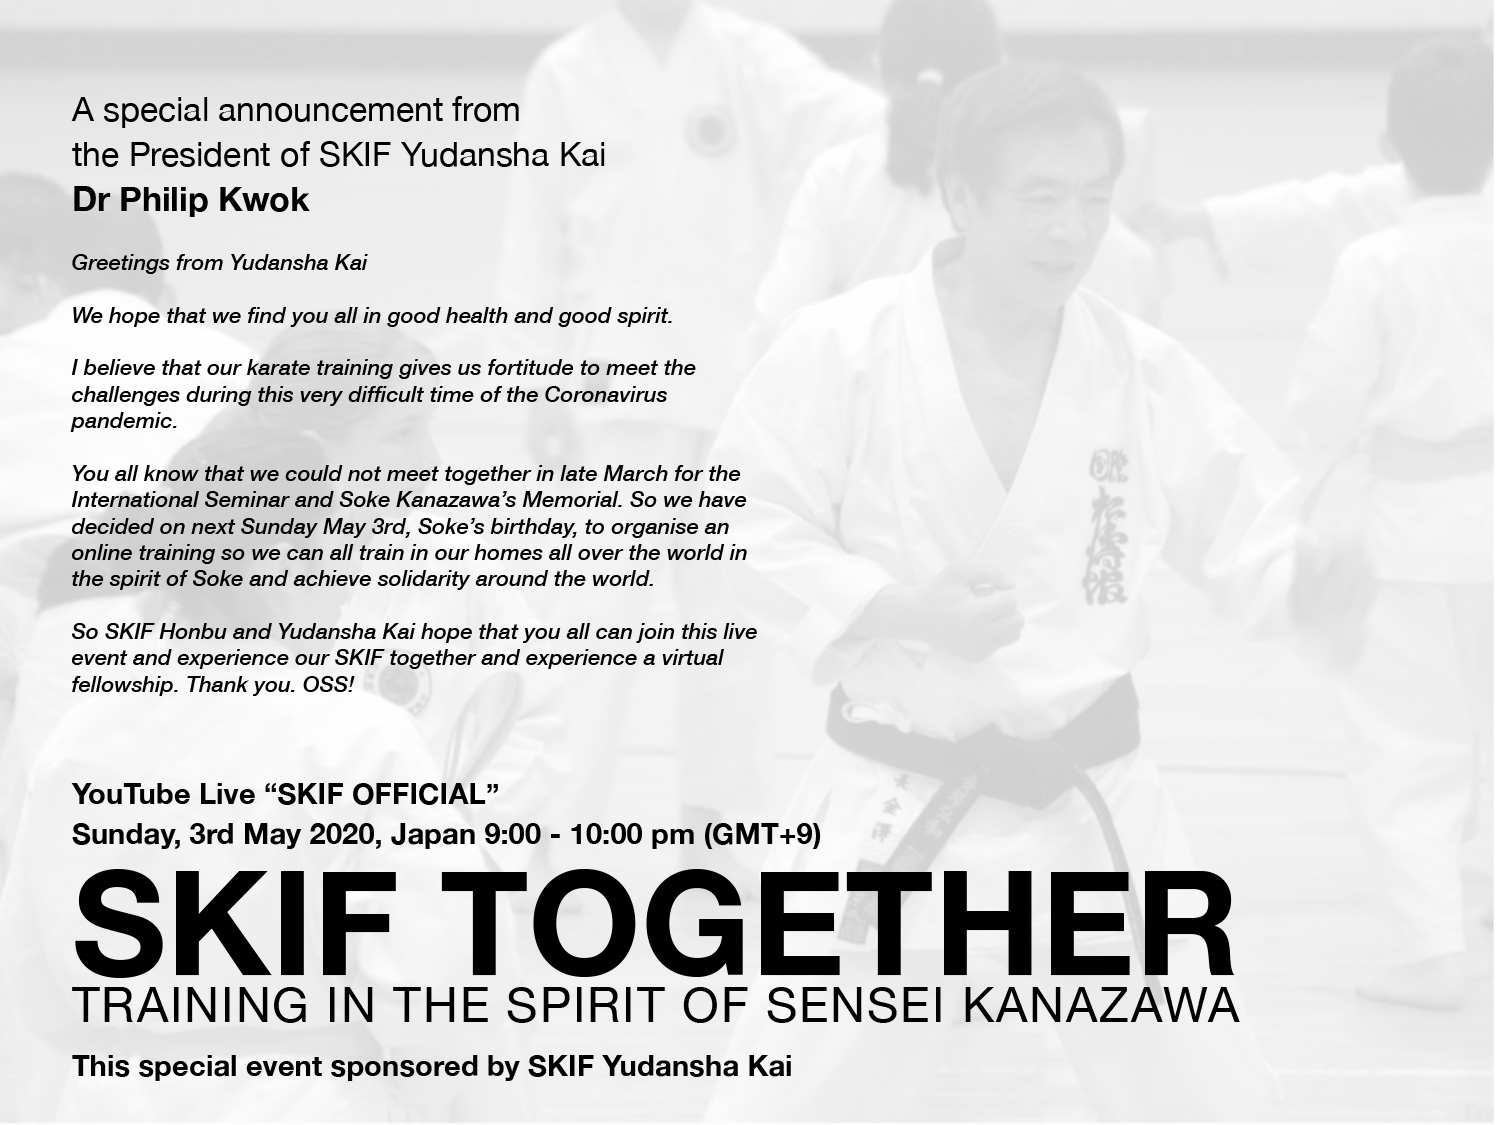 SKIF Train Together in the Spirit of Soke Hirokazu Kanazawa